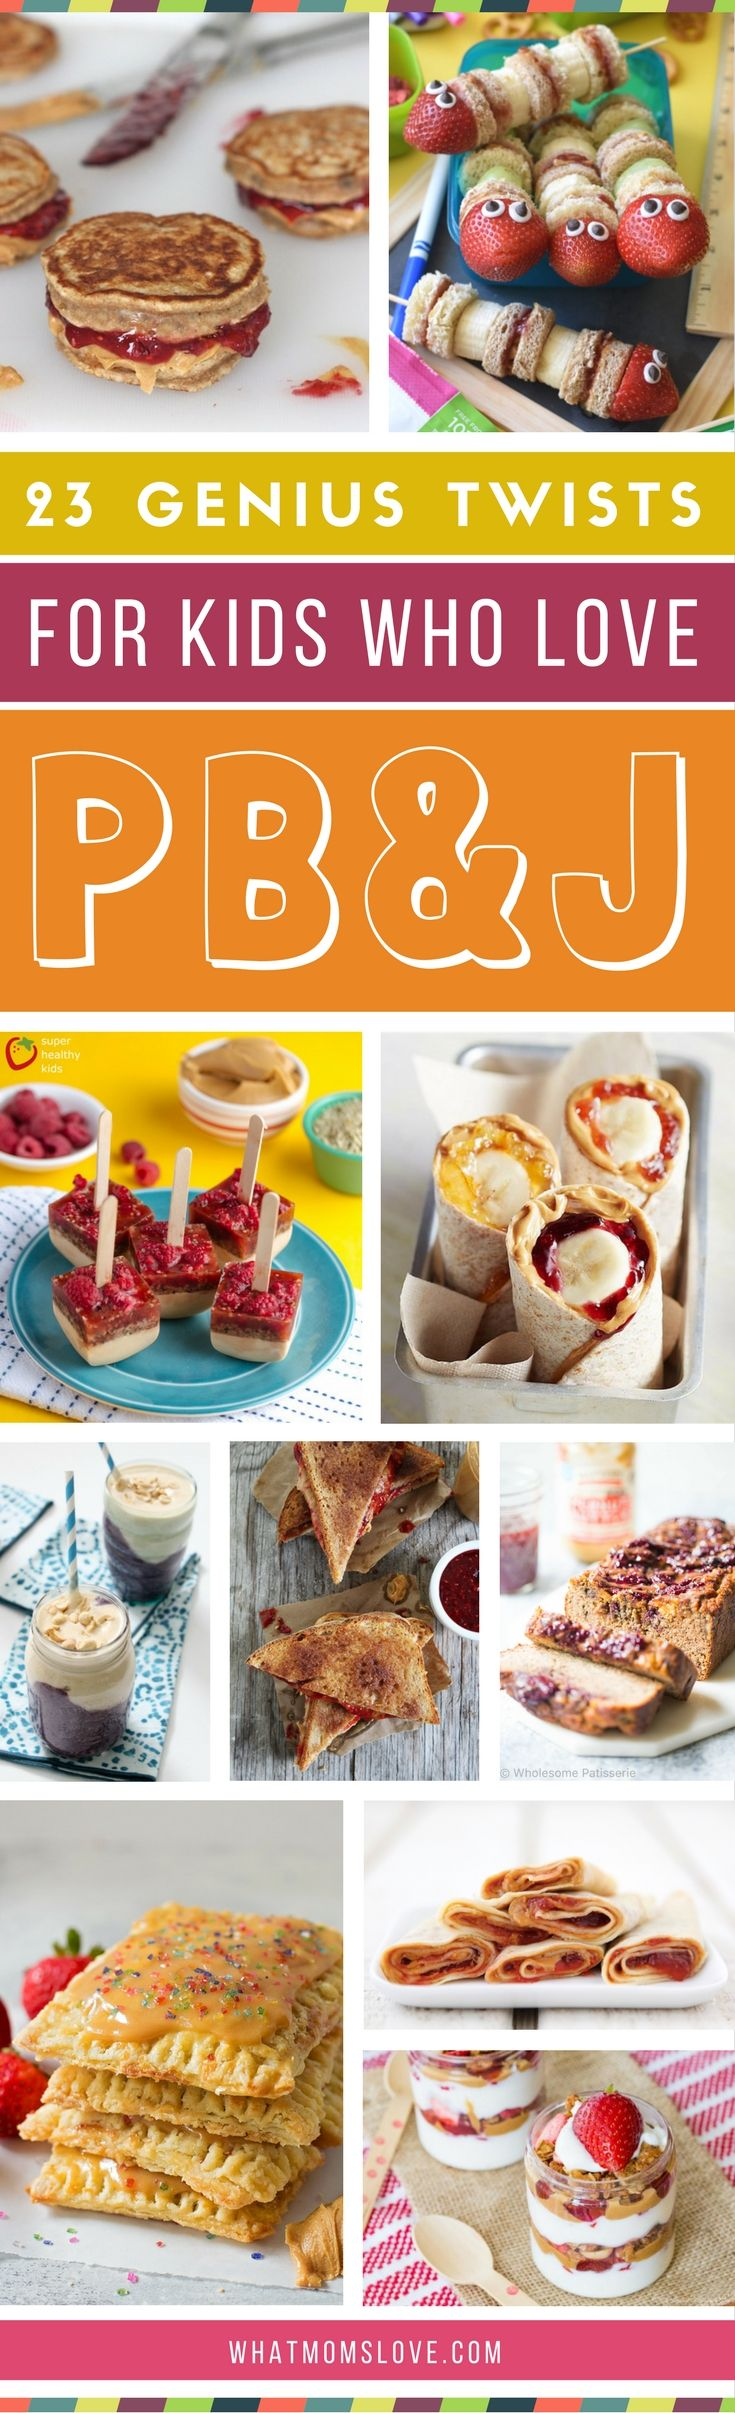 Peanut Butter Jelly Recipes for Kids - twists on the classic sandwich   Creative PBJ variations for breakfast, lunch, snack or a treat   Easy ideas for picky eaters - make food fun!